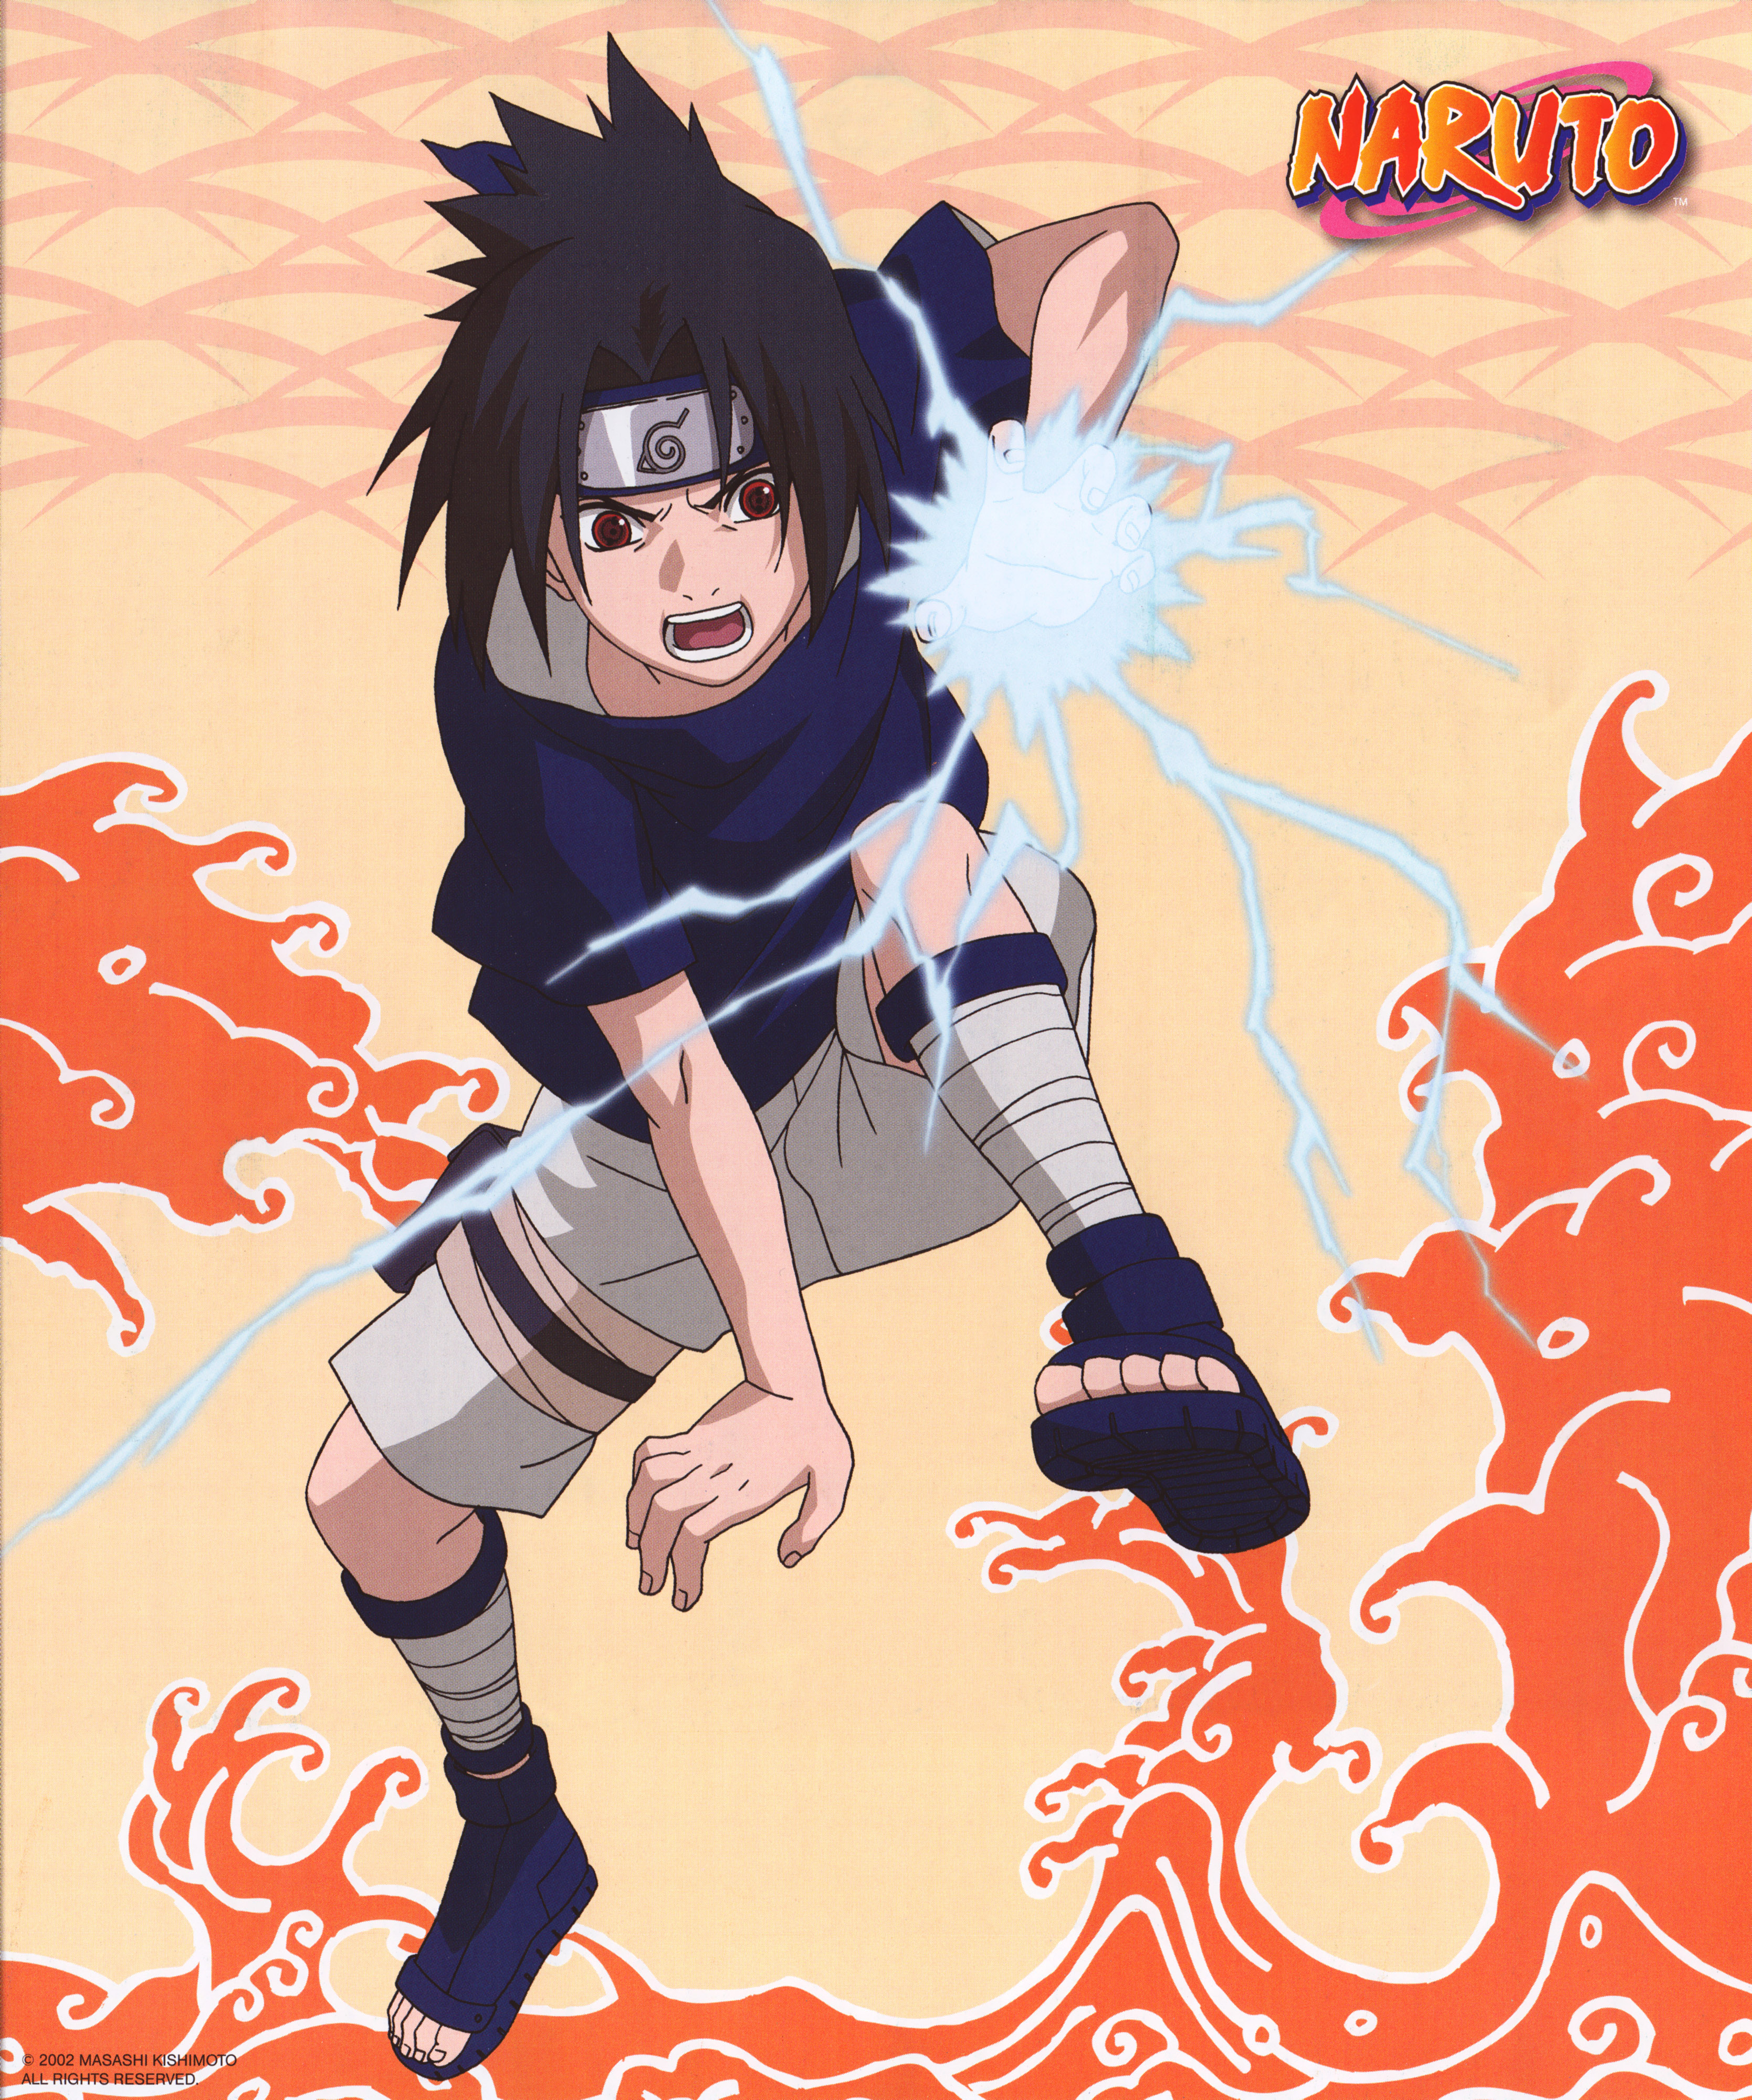 Sasuke Uses Chidori with Red Water in Background